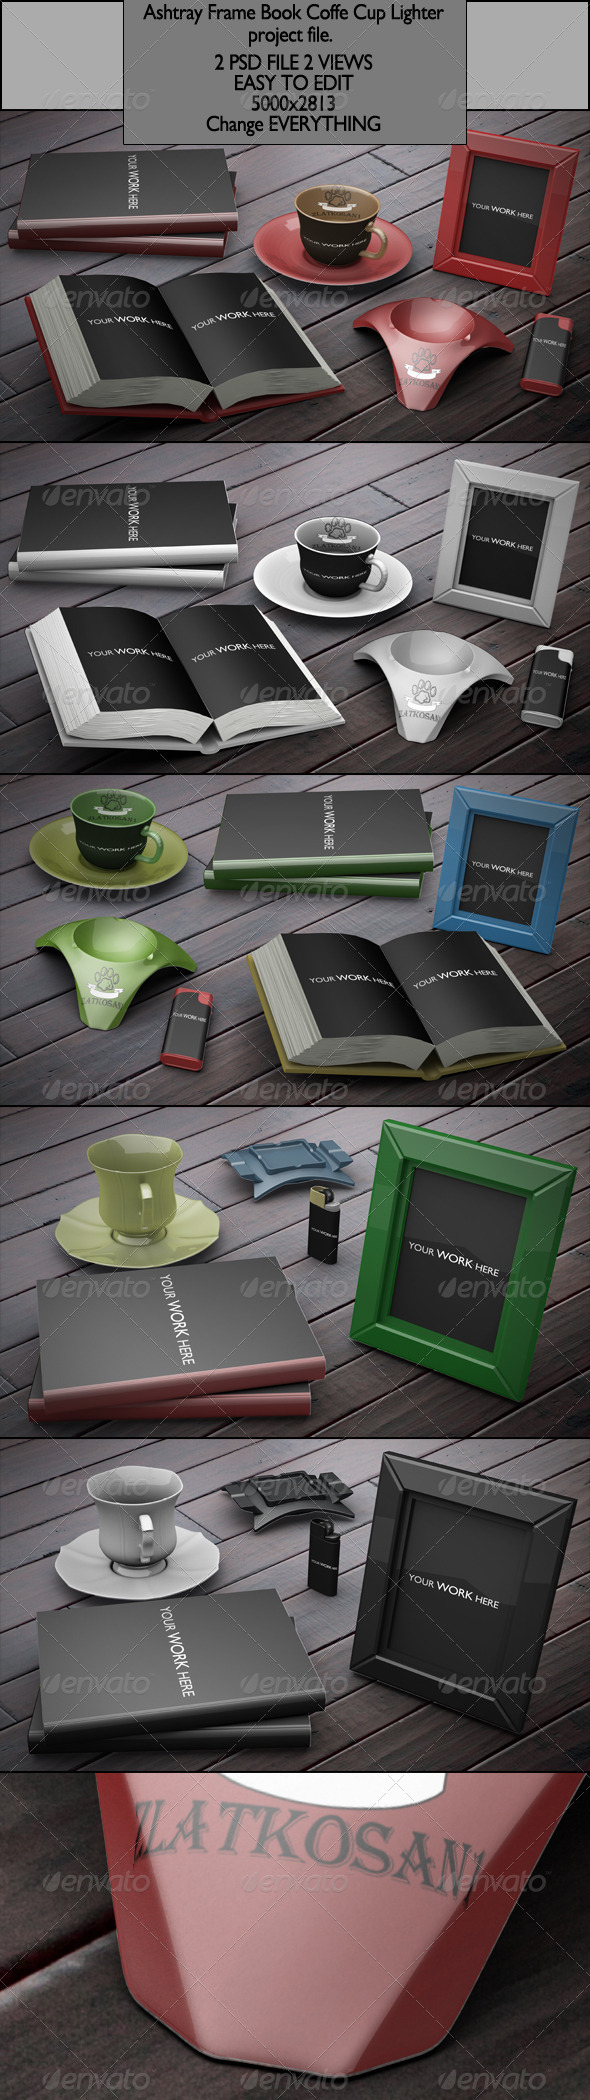 GraphicRiver Ashtray Frame Book Coffe Cup Lighter project file 6531396